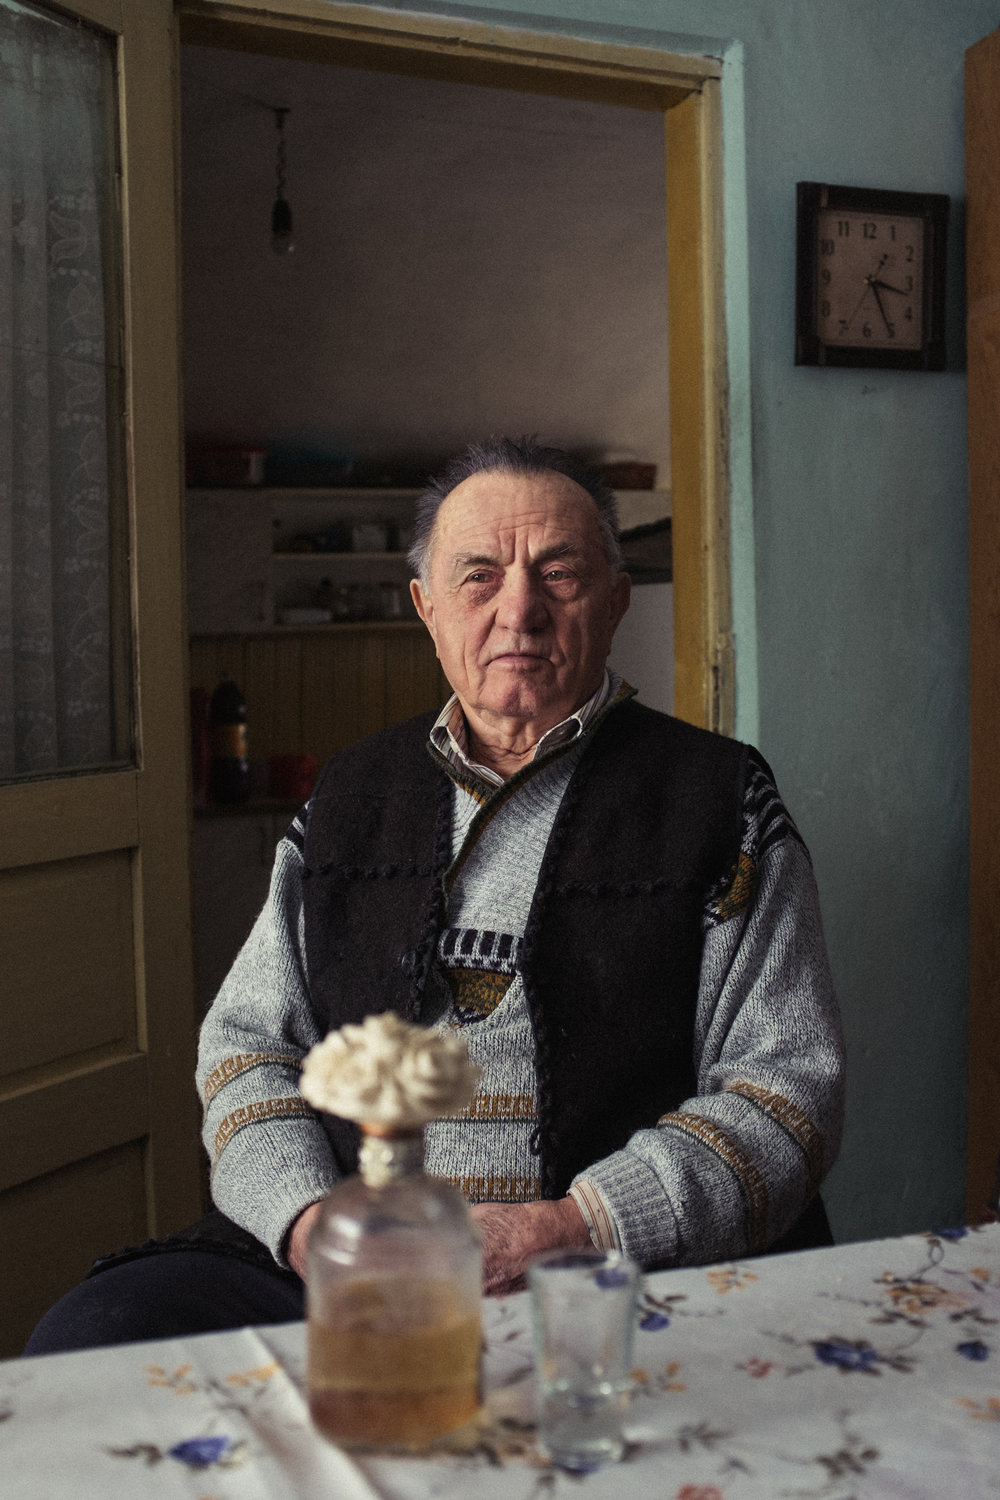 Grandad at 83, Romania, 2016